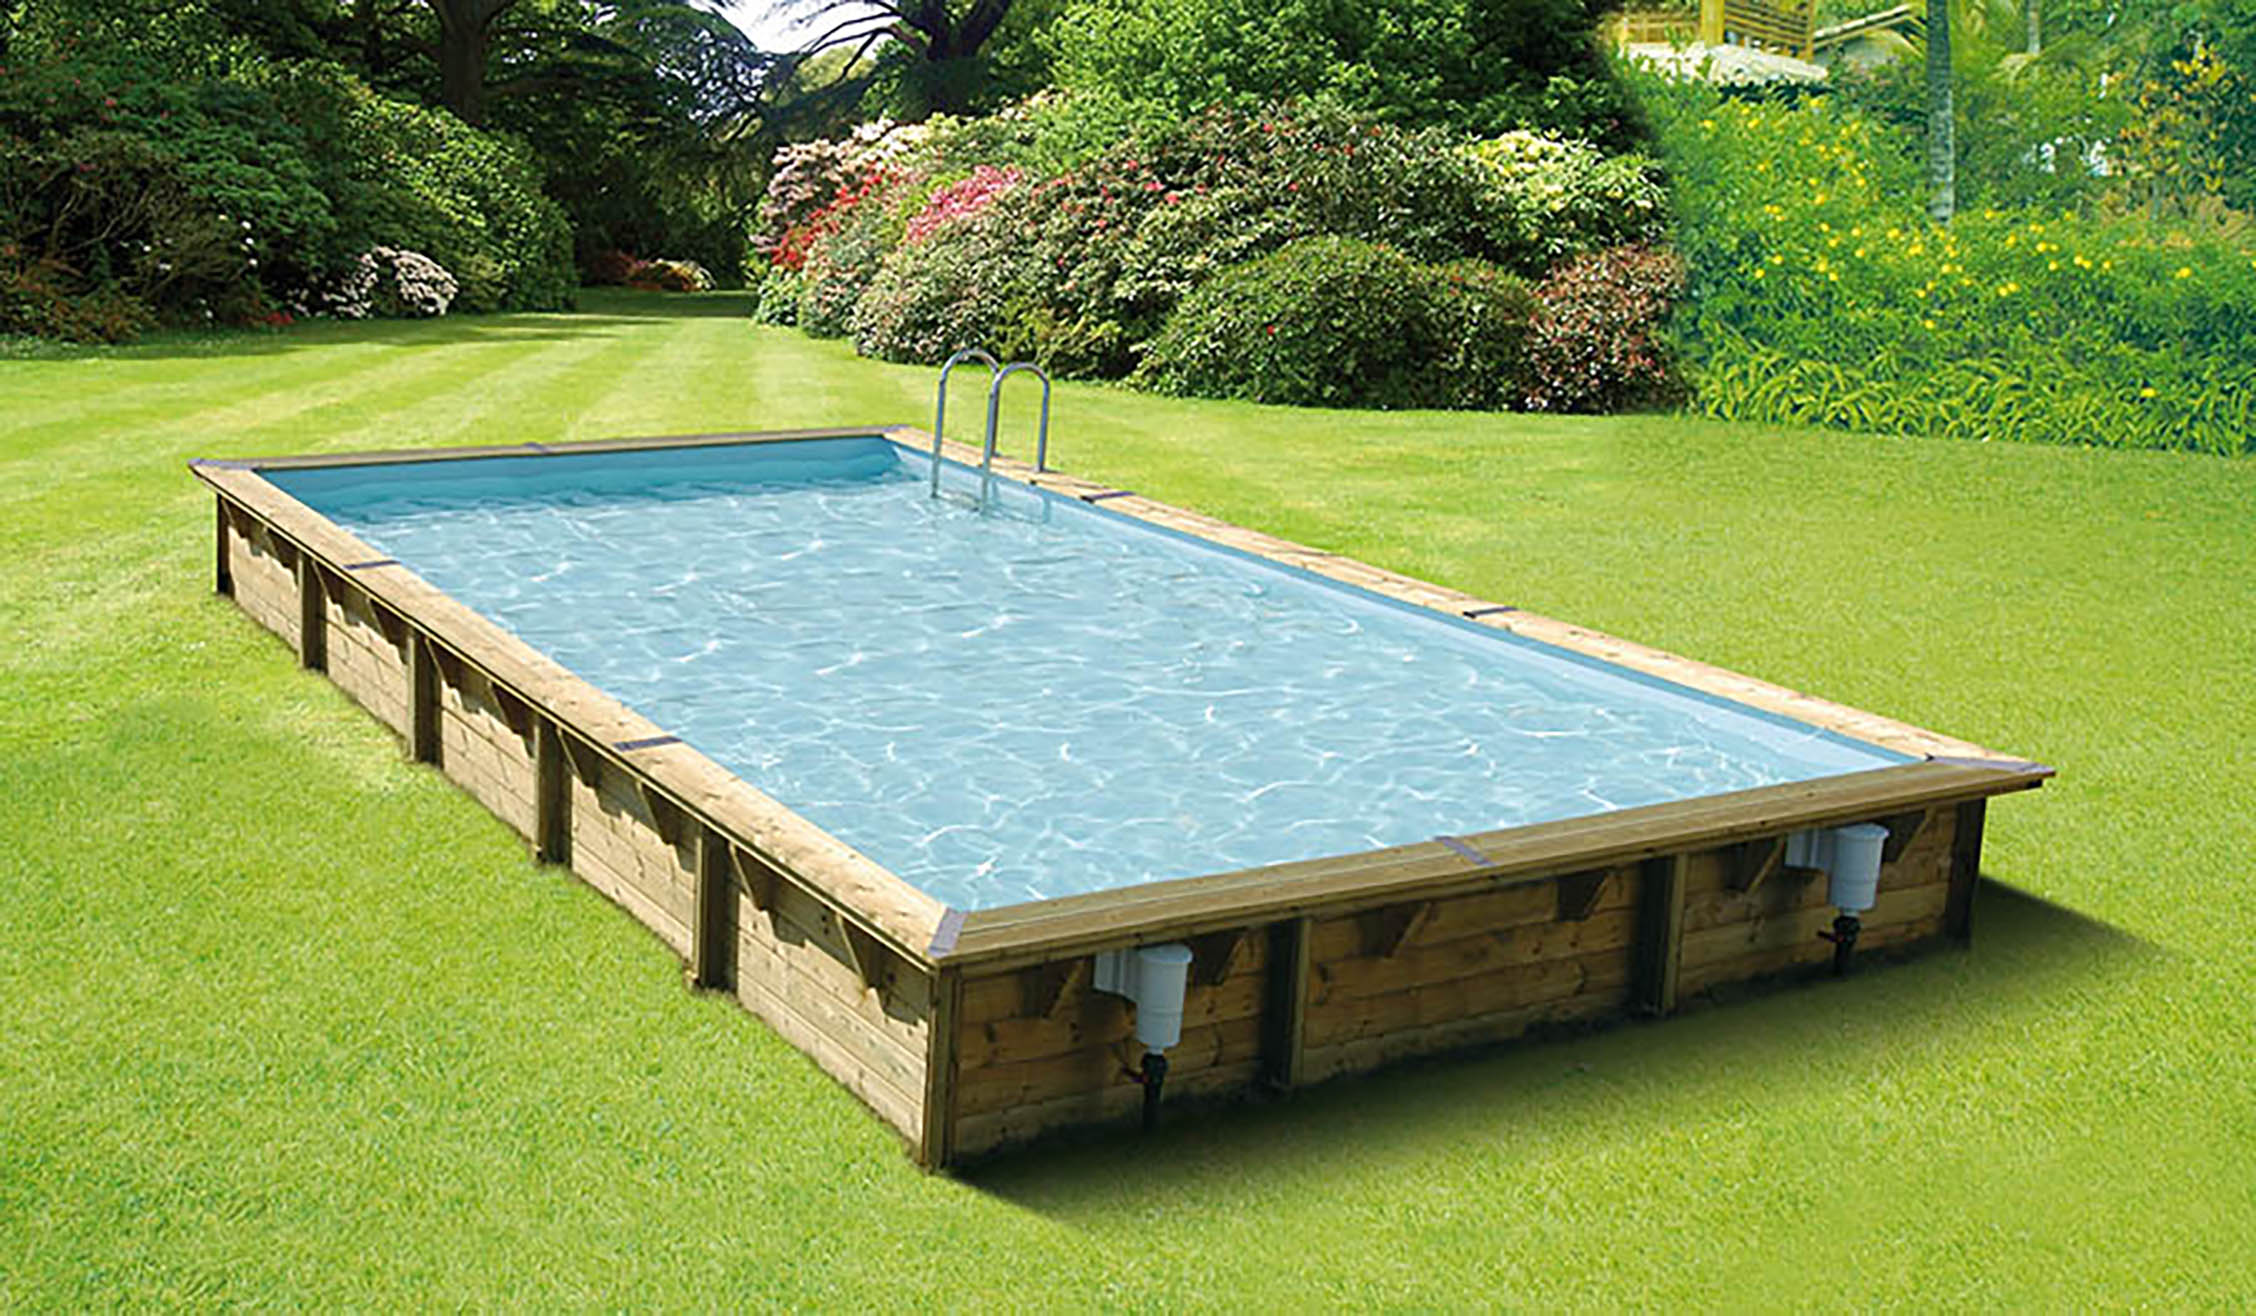 Amenagement piscine bois hors sol id es de conception sont int ressants for Amenagement piscine